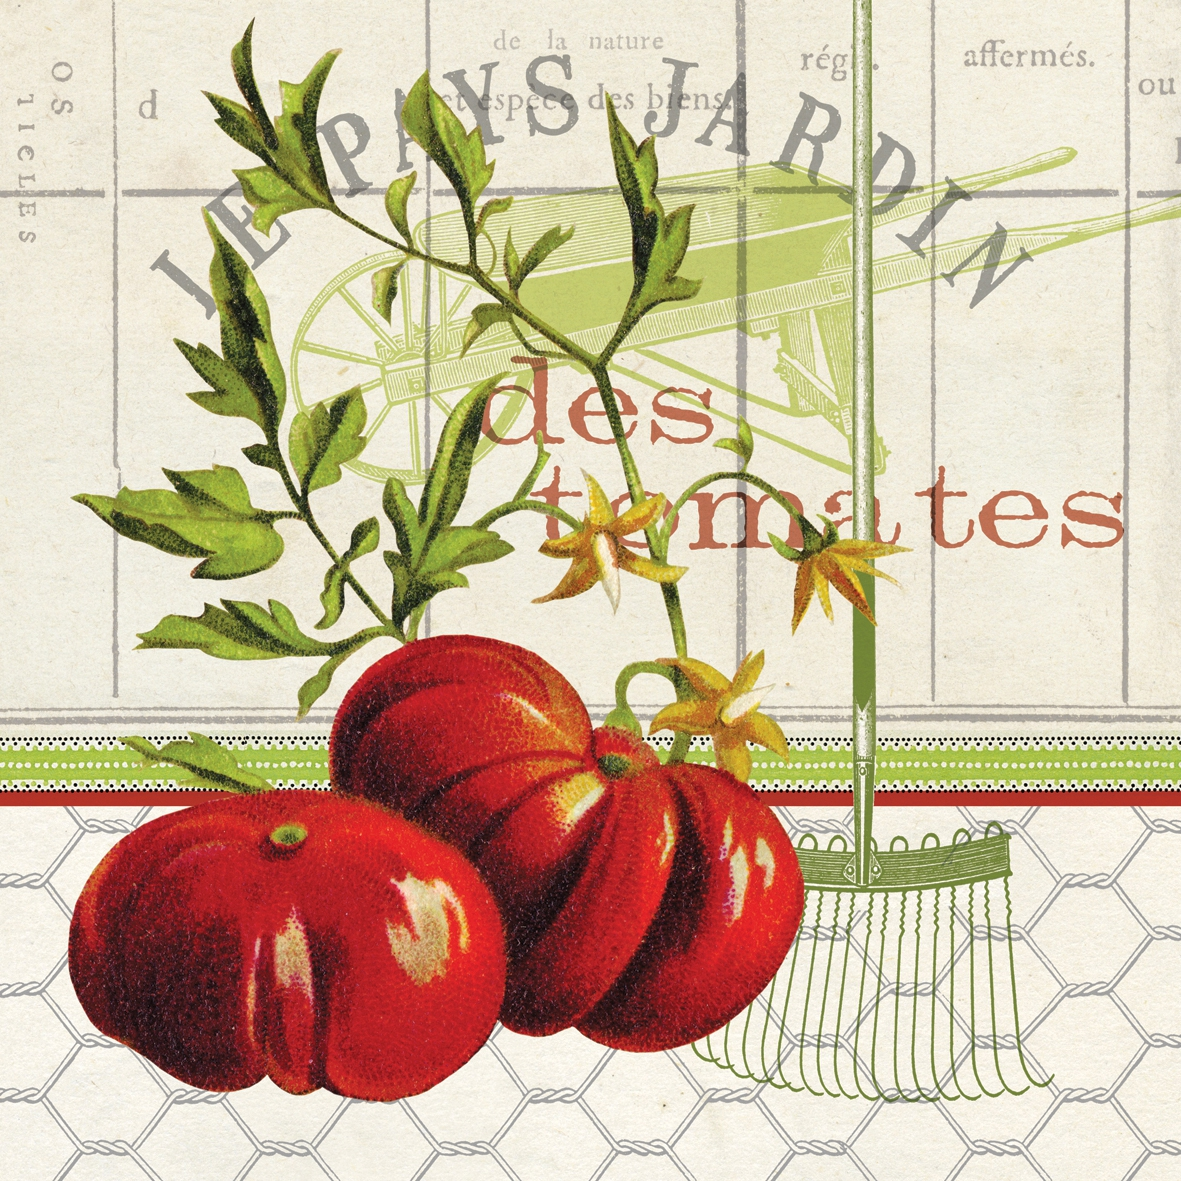 Paperproducts Design,  Gemüse - Tomaten,  Essen -  Sonstiges,  Everyday,  lunchservietten,  Tomaten